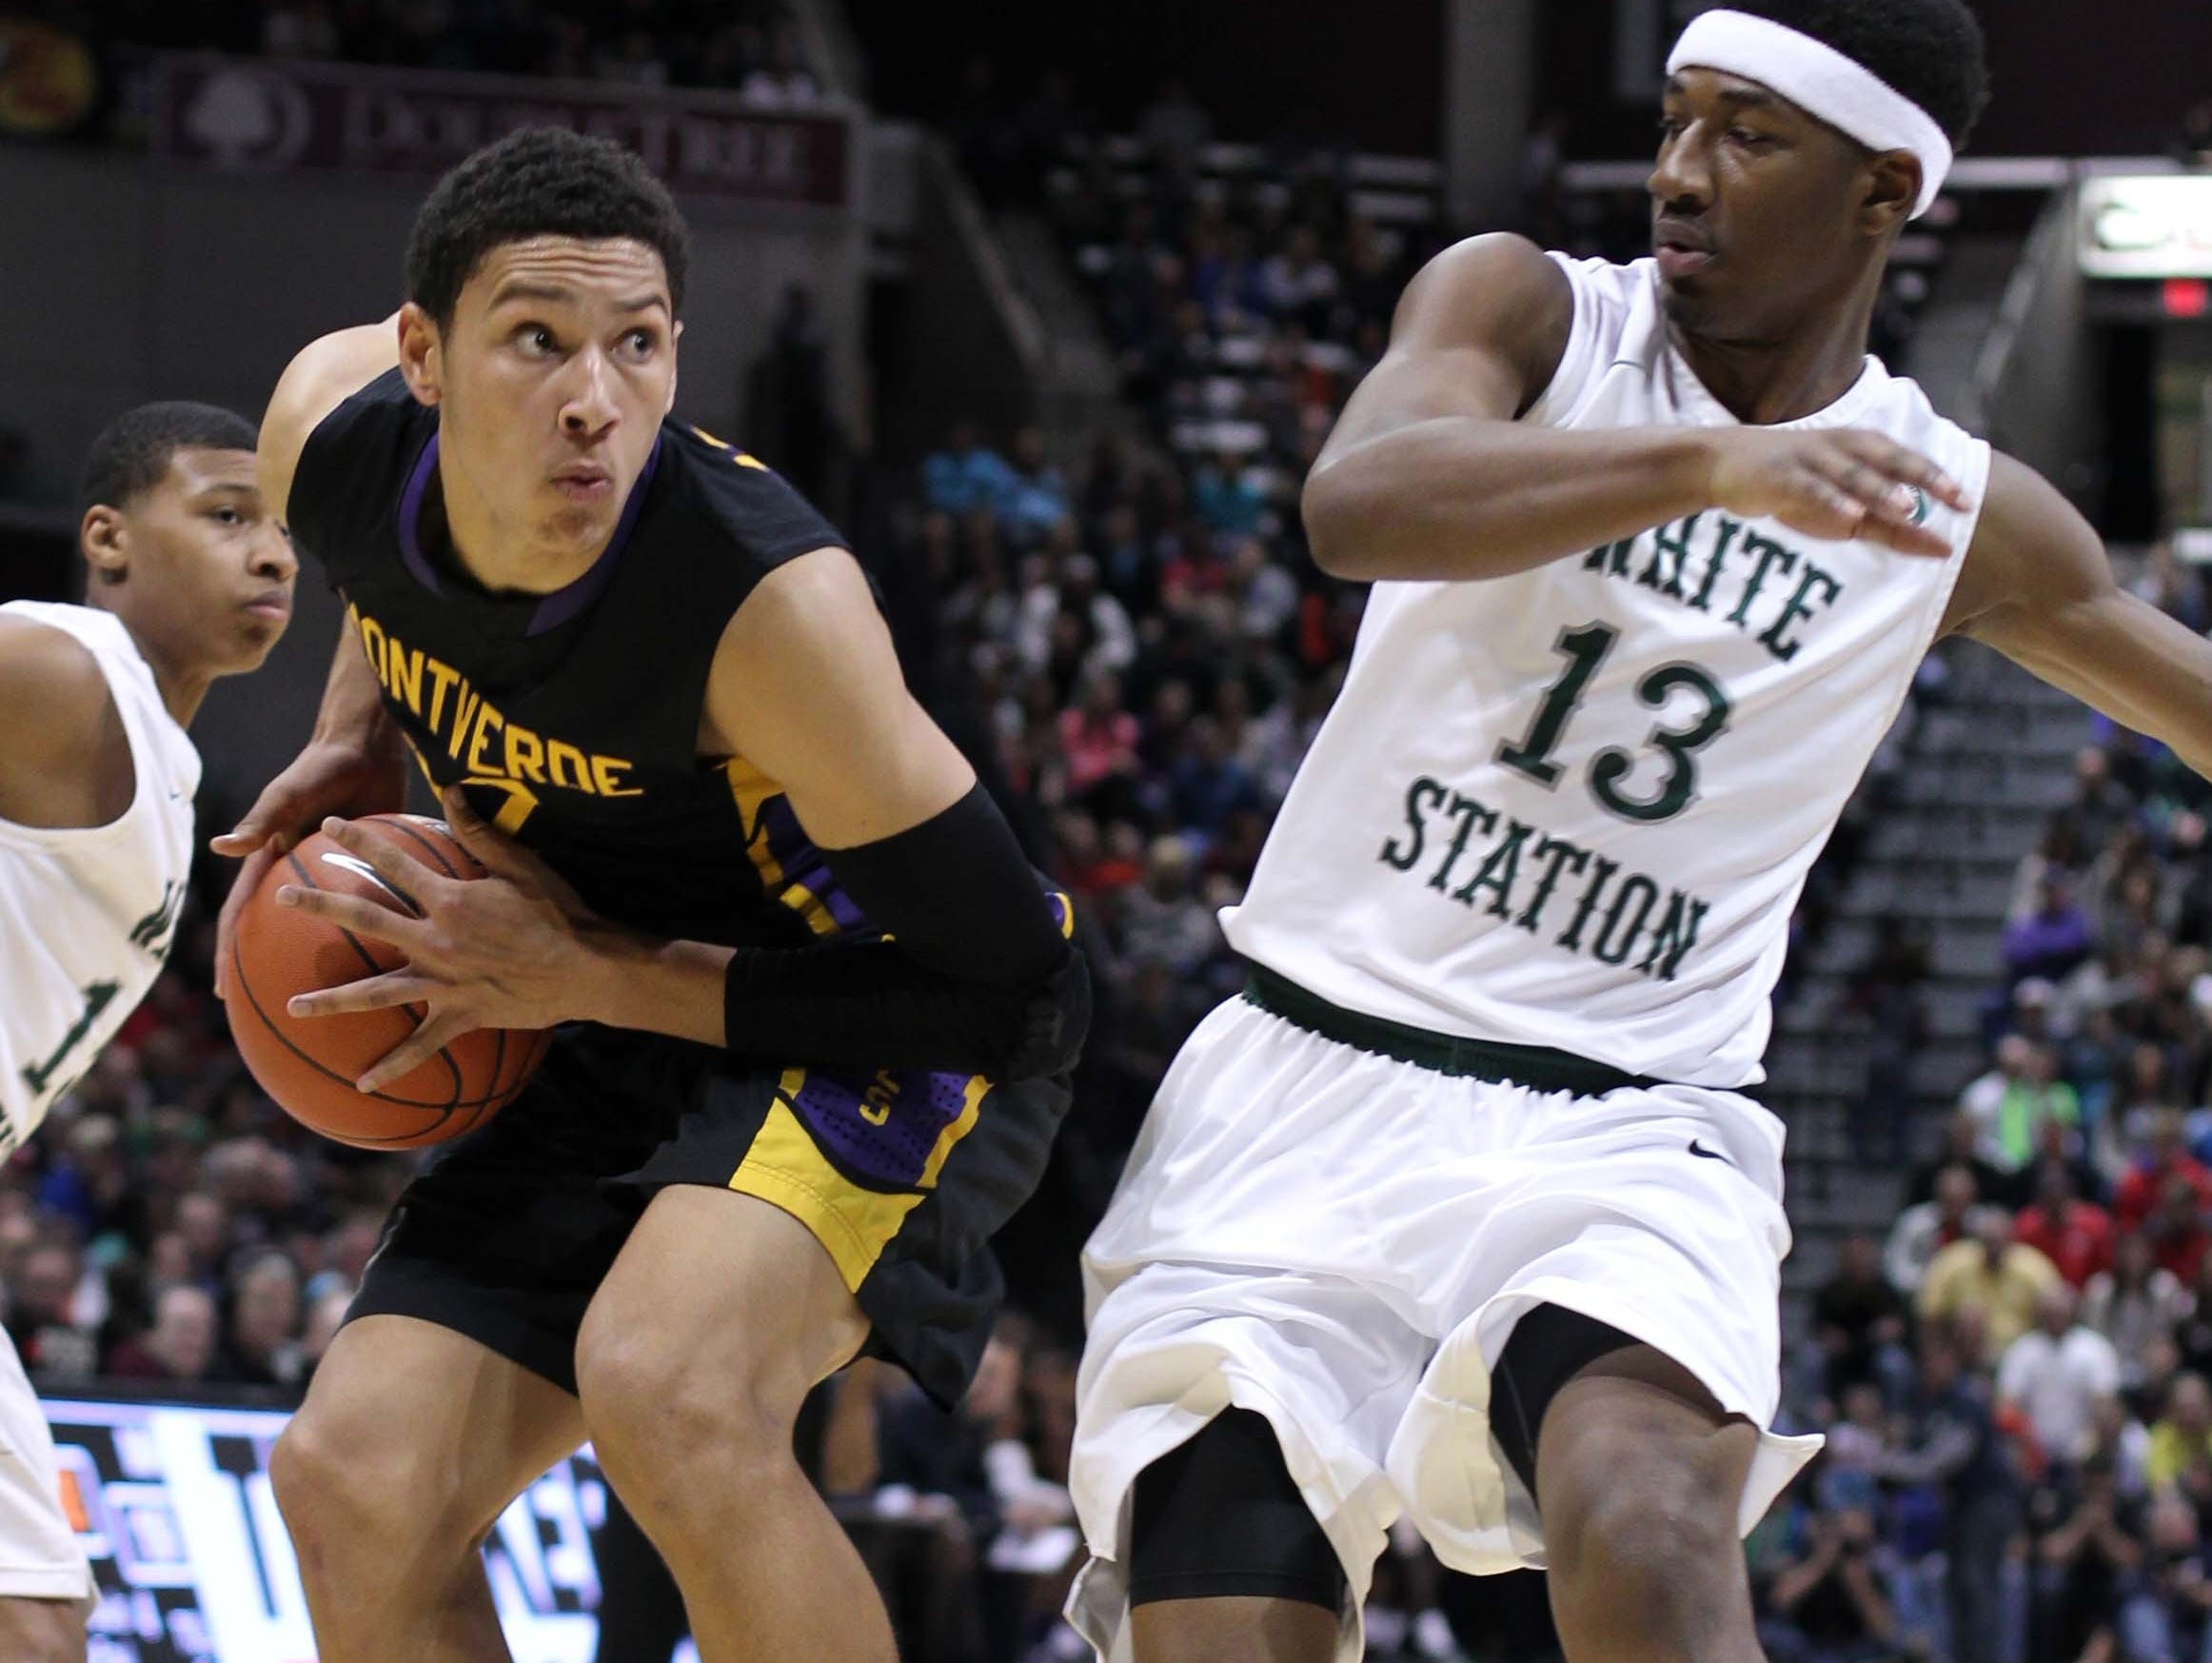 Ben Simmons, left, the No. 1 overall pick in the 2016 NBA Draft, played for tournament champion Montverde Academy (Montverde, Florida) in the 2014 Bass Pro Tournament of Champions